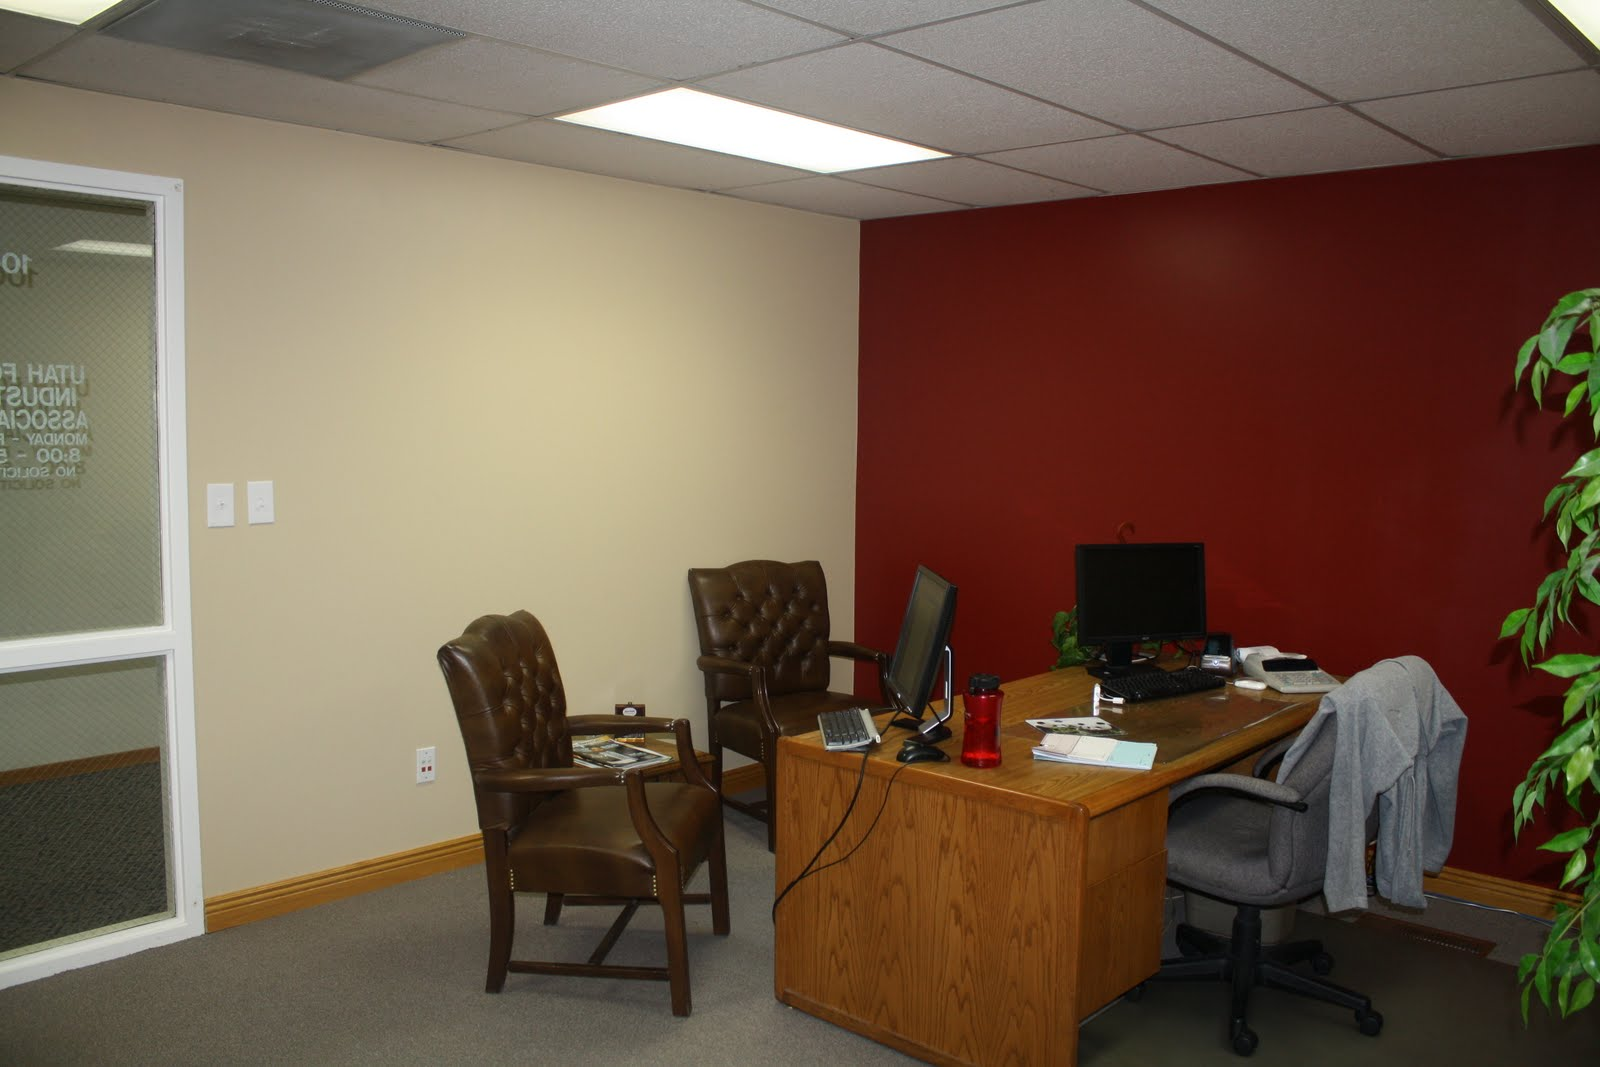 The Steeds: Painting the Office Red